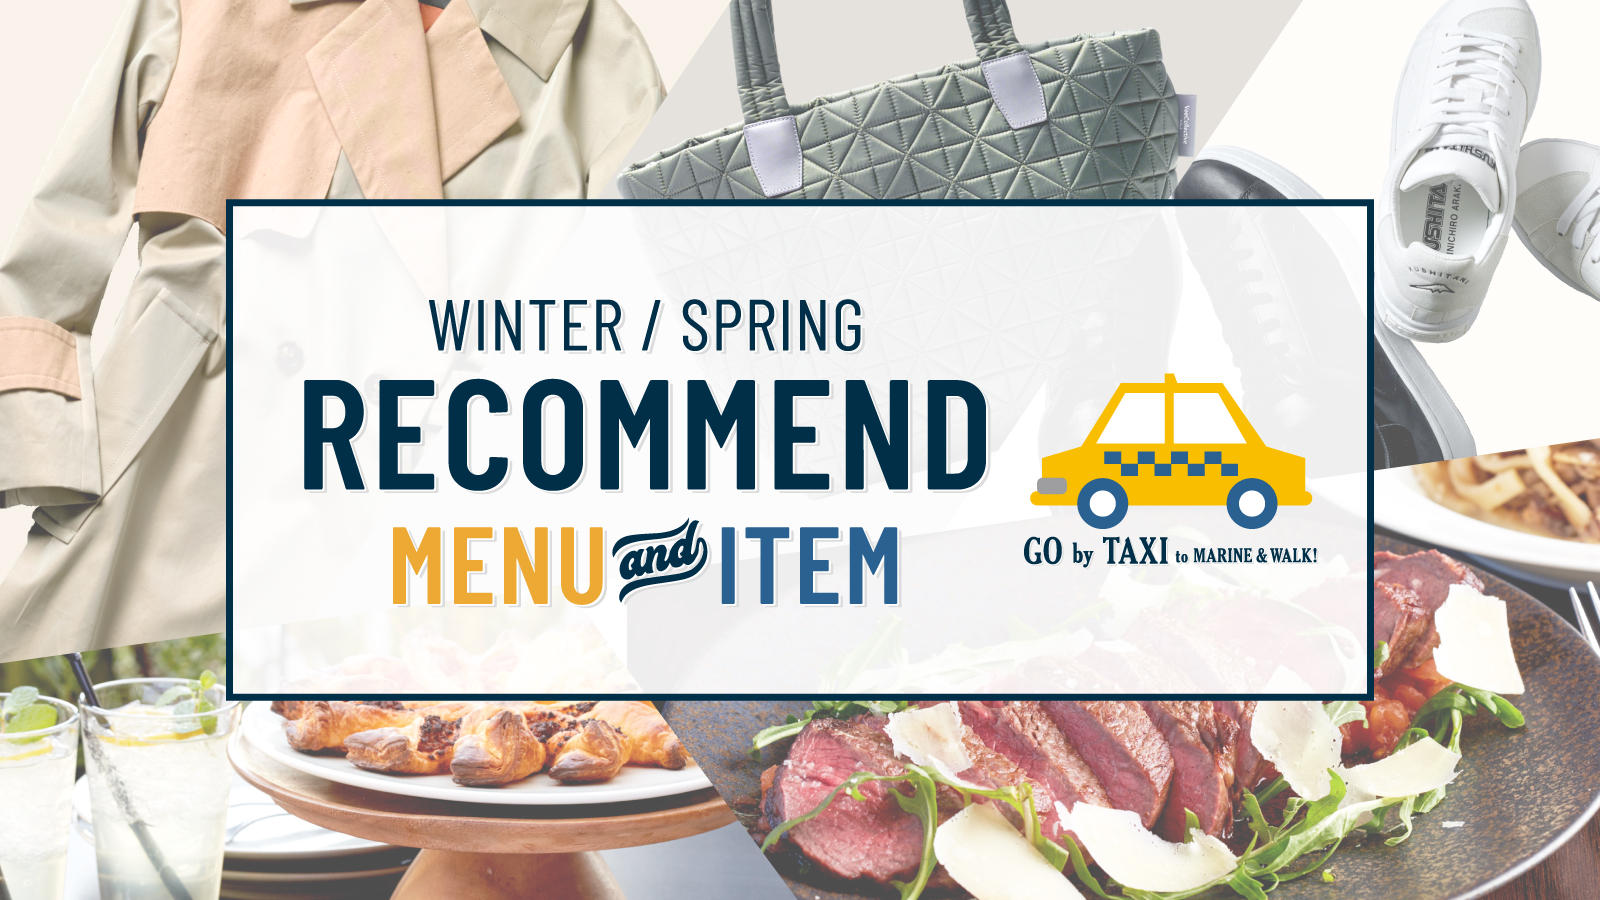 WINTER/SPRING RECOMMEND MENU and ITEM